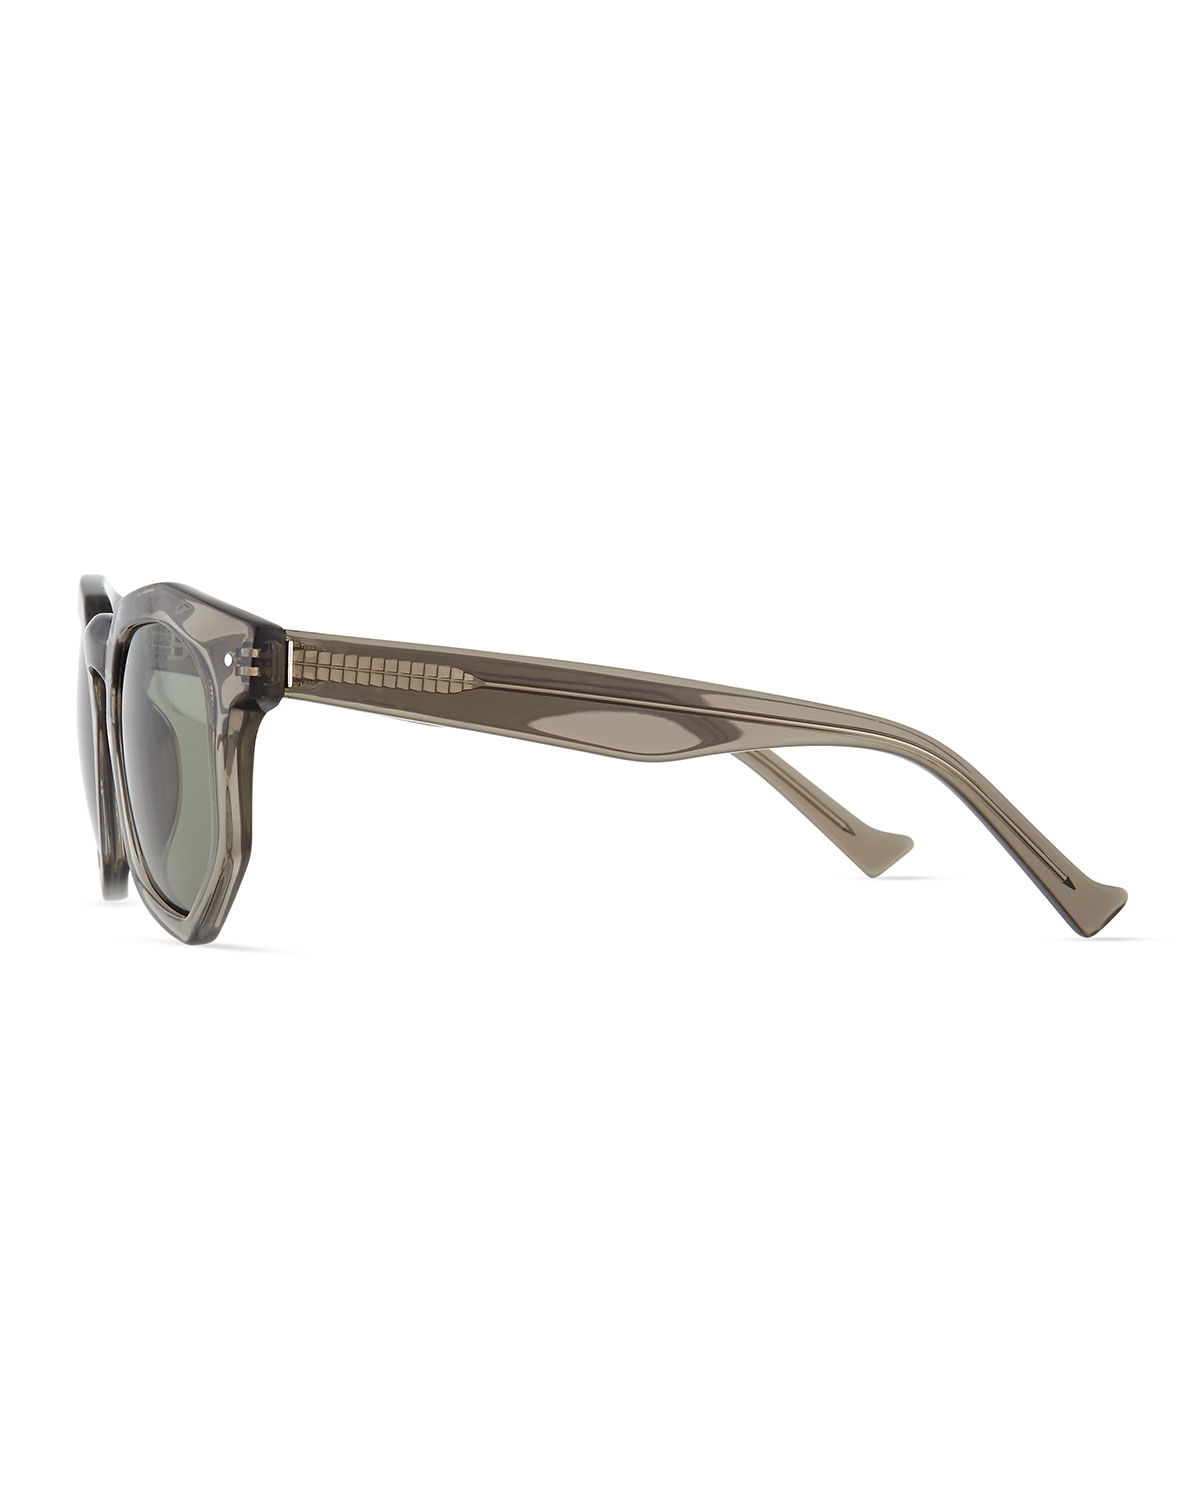 98b81625ede Lyst - Grey Ant Composite Faceted Plastic Sunglasses in Gray